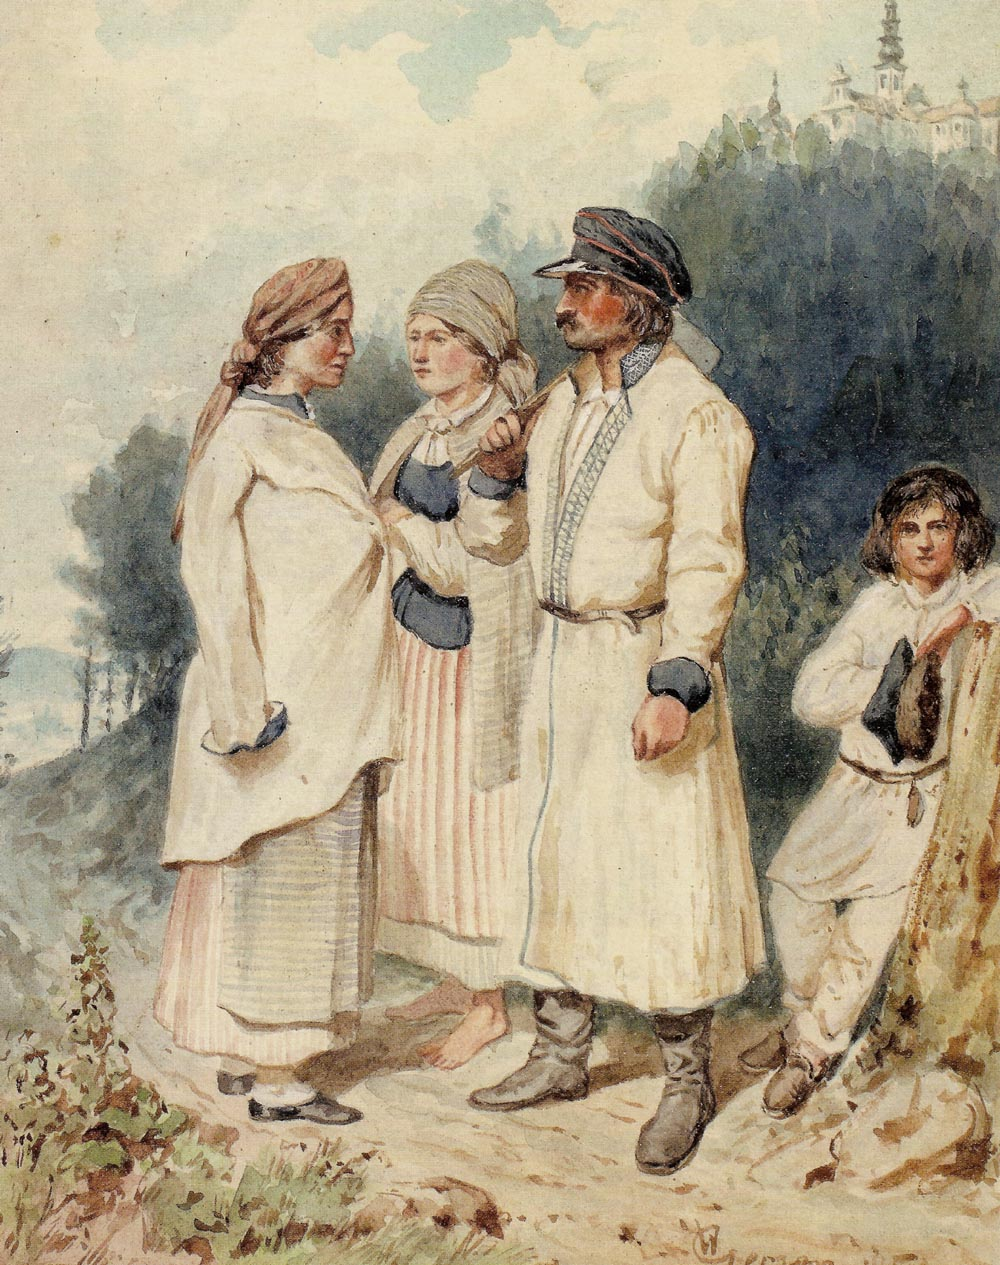 Peasants of Sandomierz